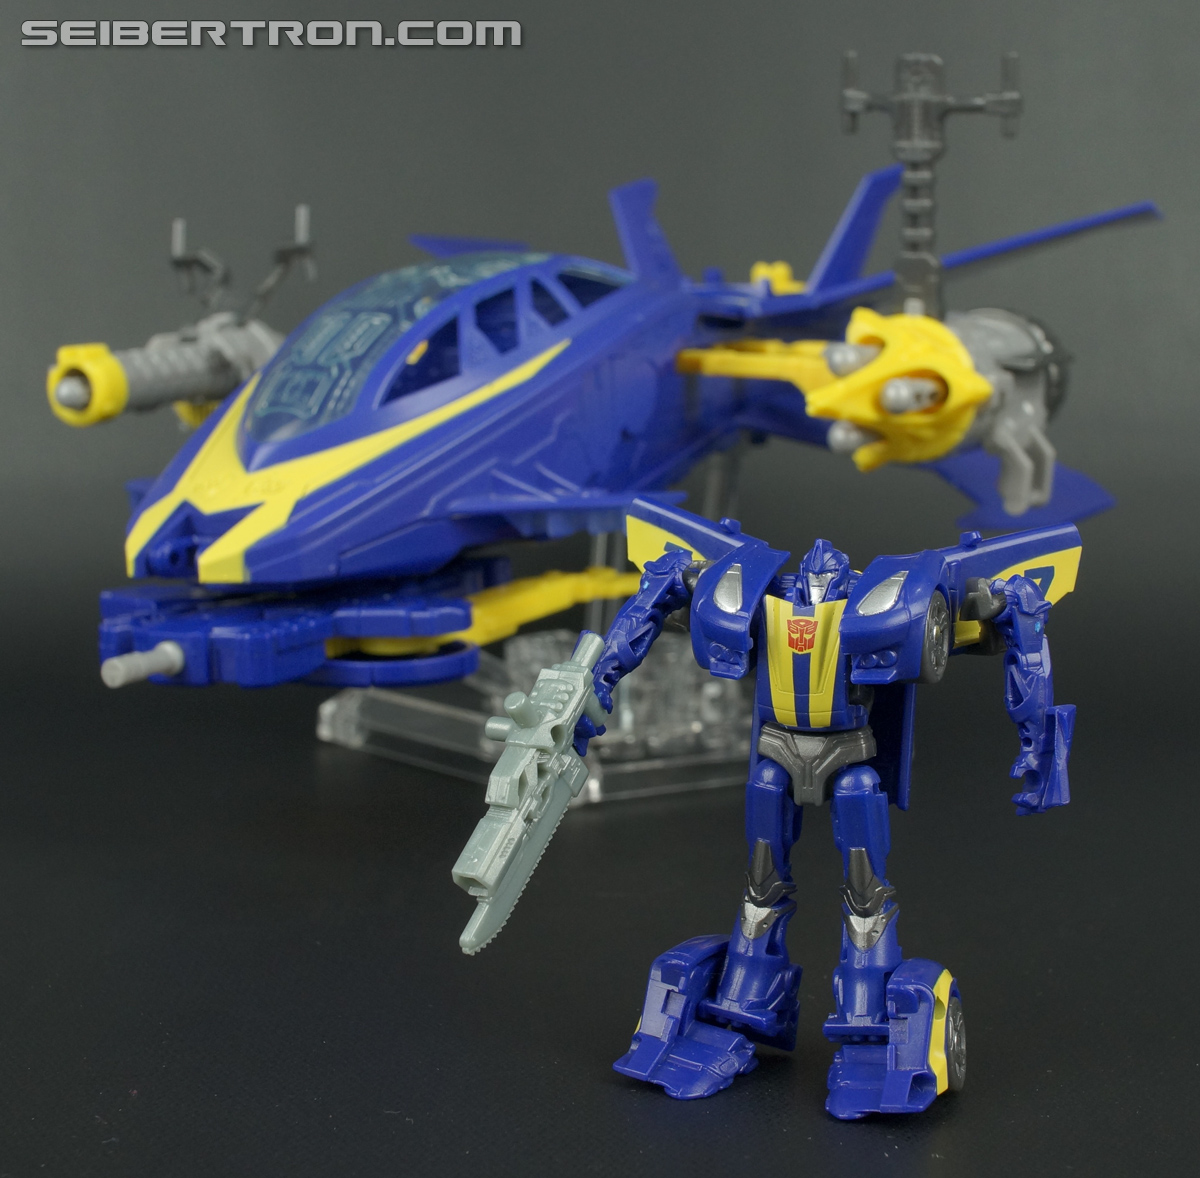 Transformers Prime Beast Hunters Cyberverse Sky Claw (Image #64 of 83)